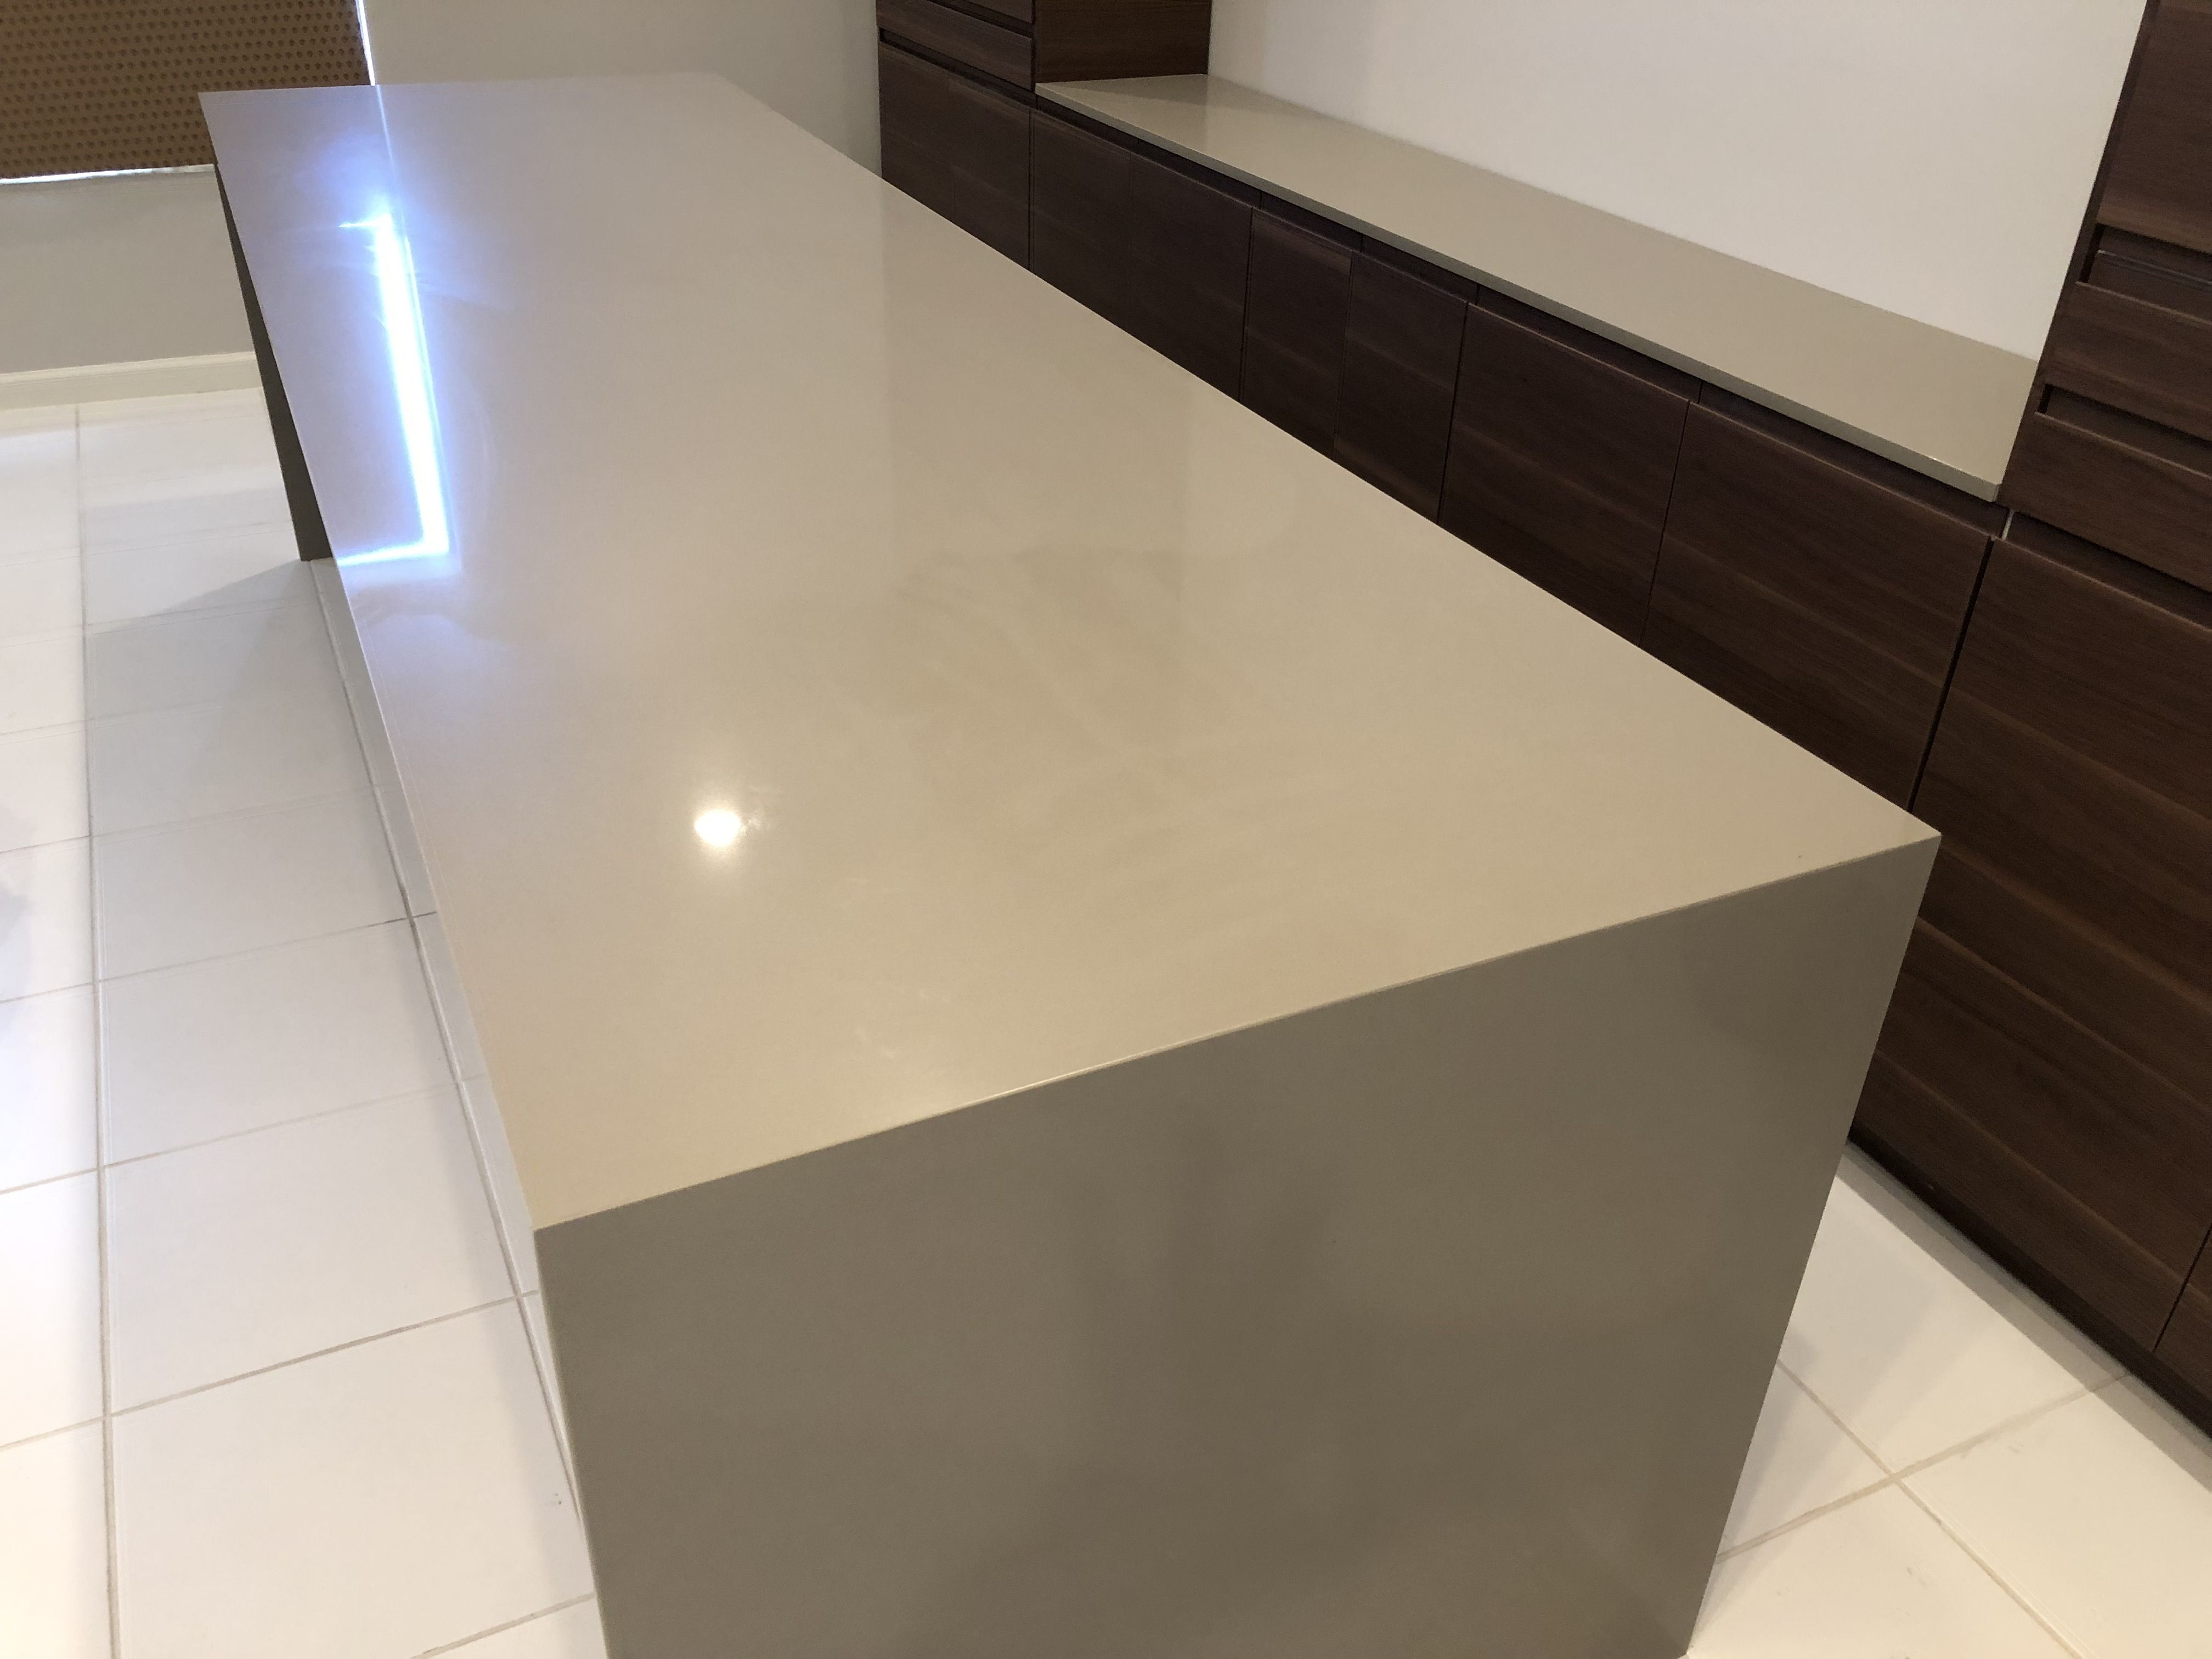 In This Desk Top We Fabricated And Installed Mitered Waterfall Edge Quartz Countertops In Both Ending Sides Of Countertops Quartz Countertops Waterfall Vanity